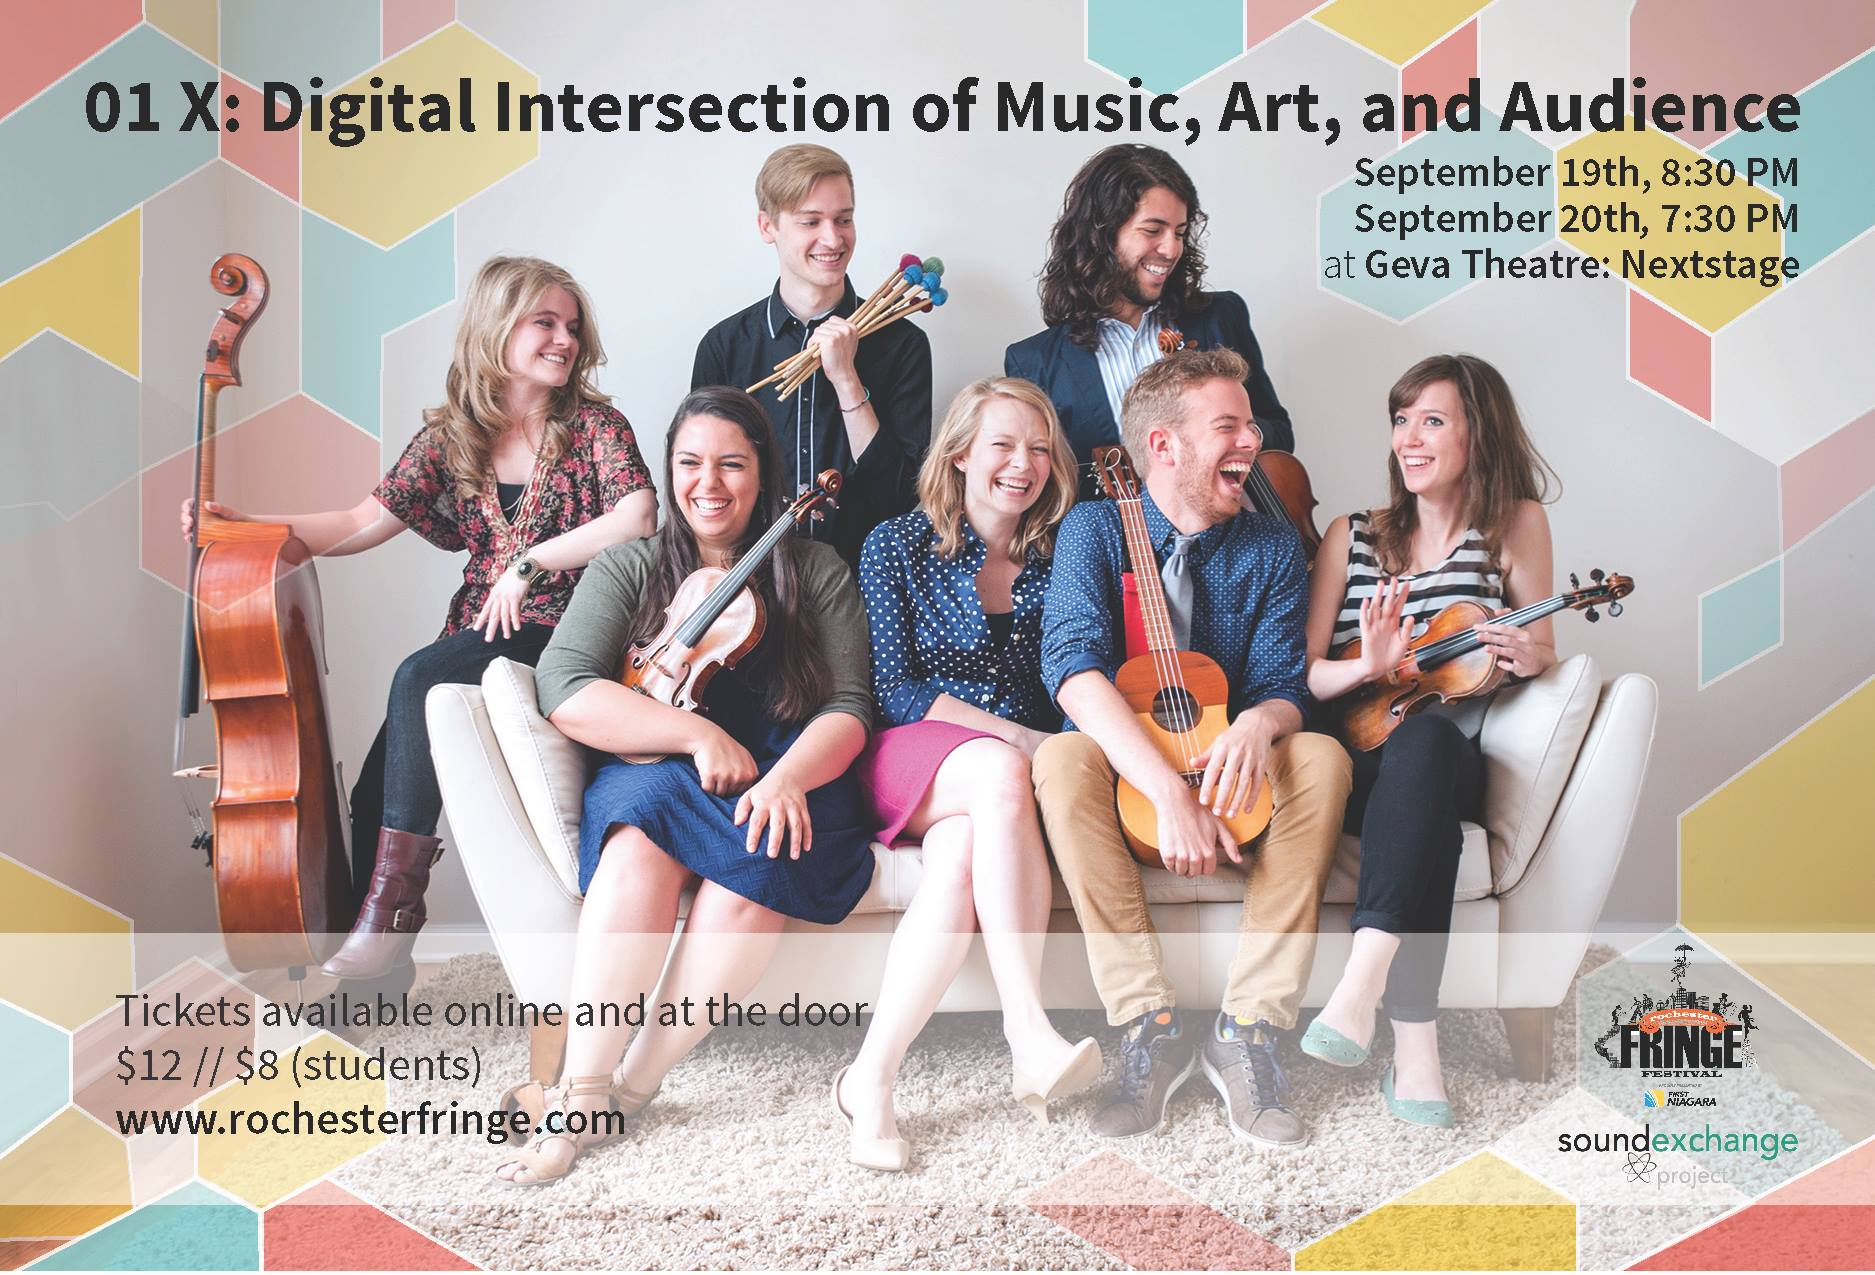 01X Project - Experience digital intersection of music, art & audience! Spent two years re